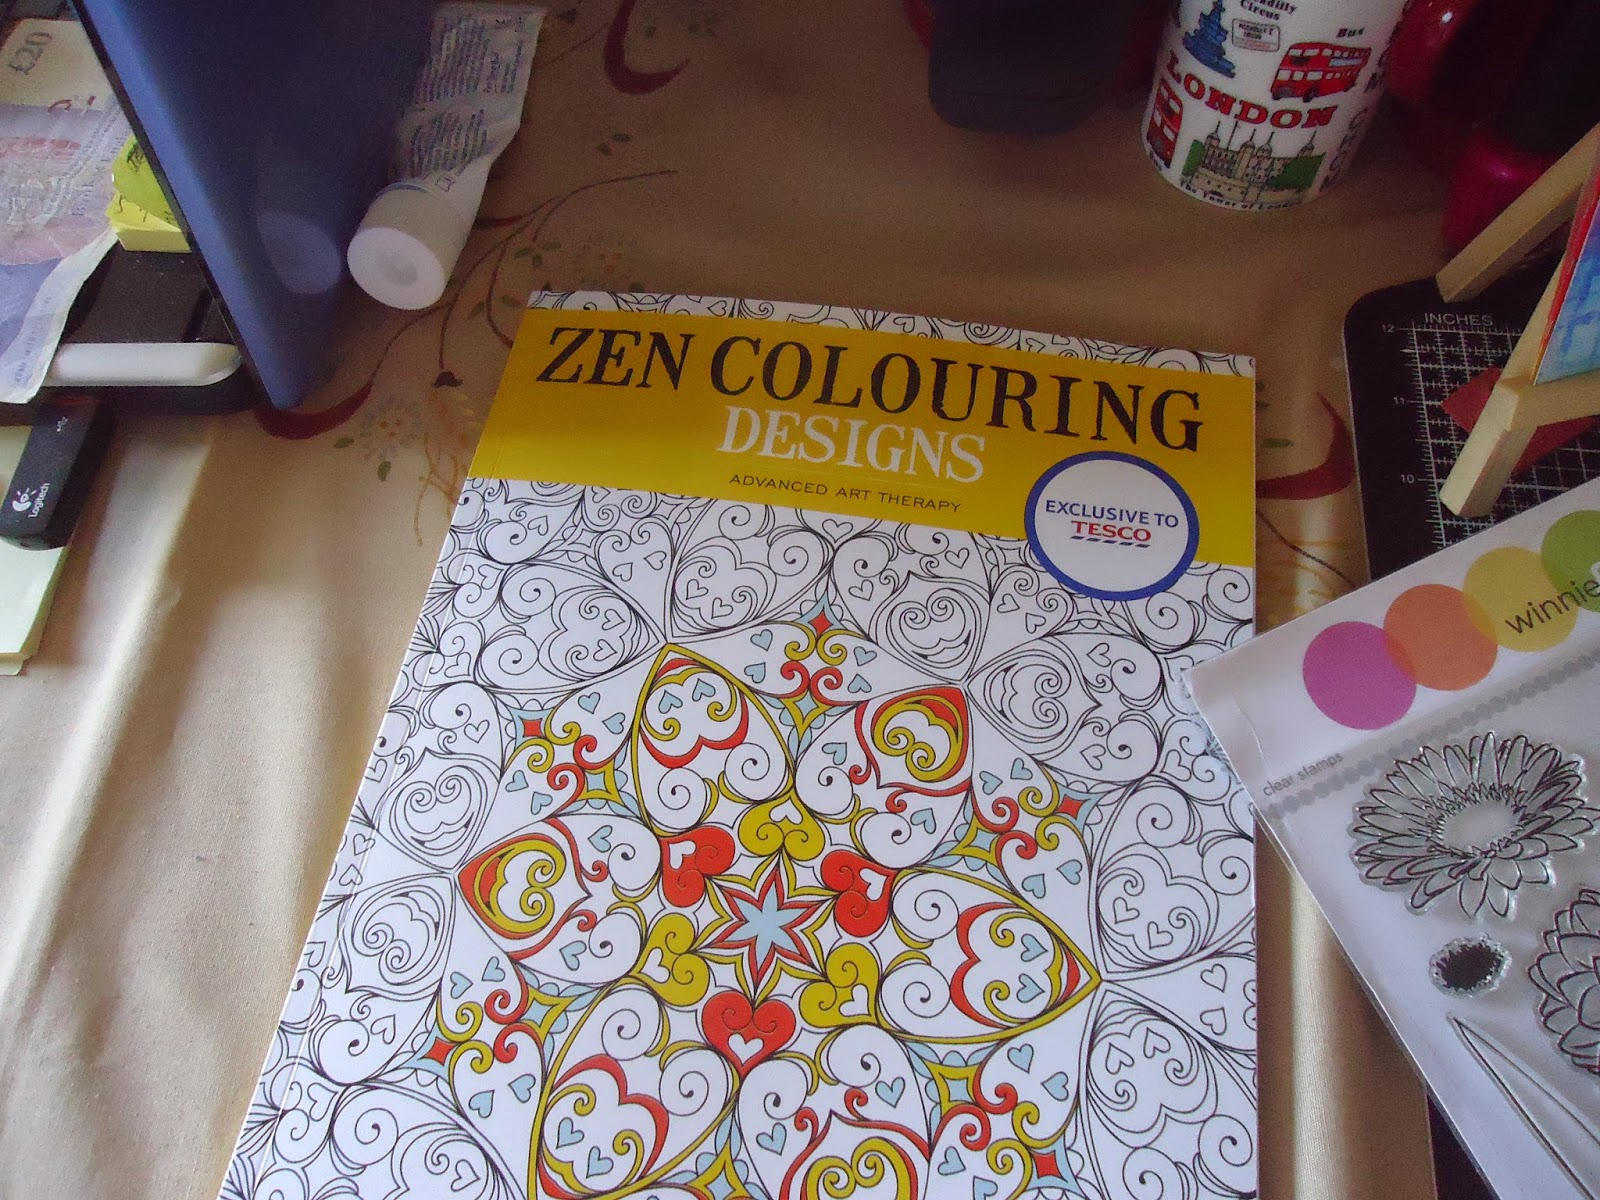 Zen colouring tesco - It Is A Zen Colouring Book I Bought In Tesco Supposedly There Will Be More Of Them I Love What It Says At The Bottom Of The Front Page